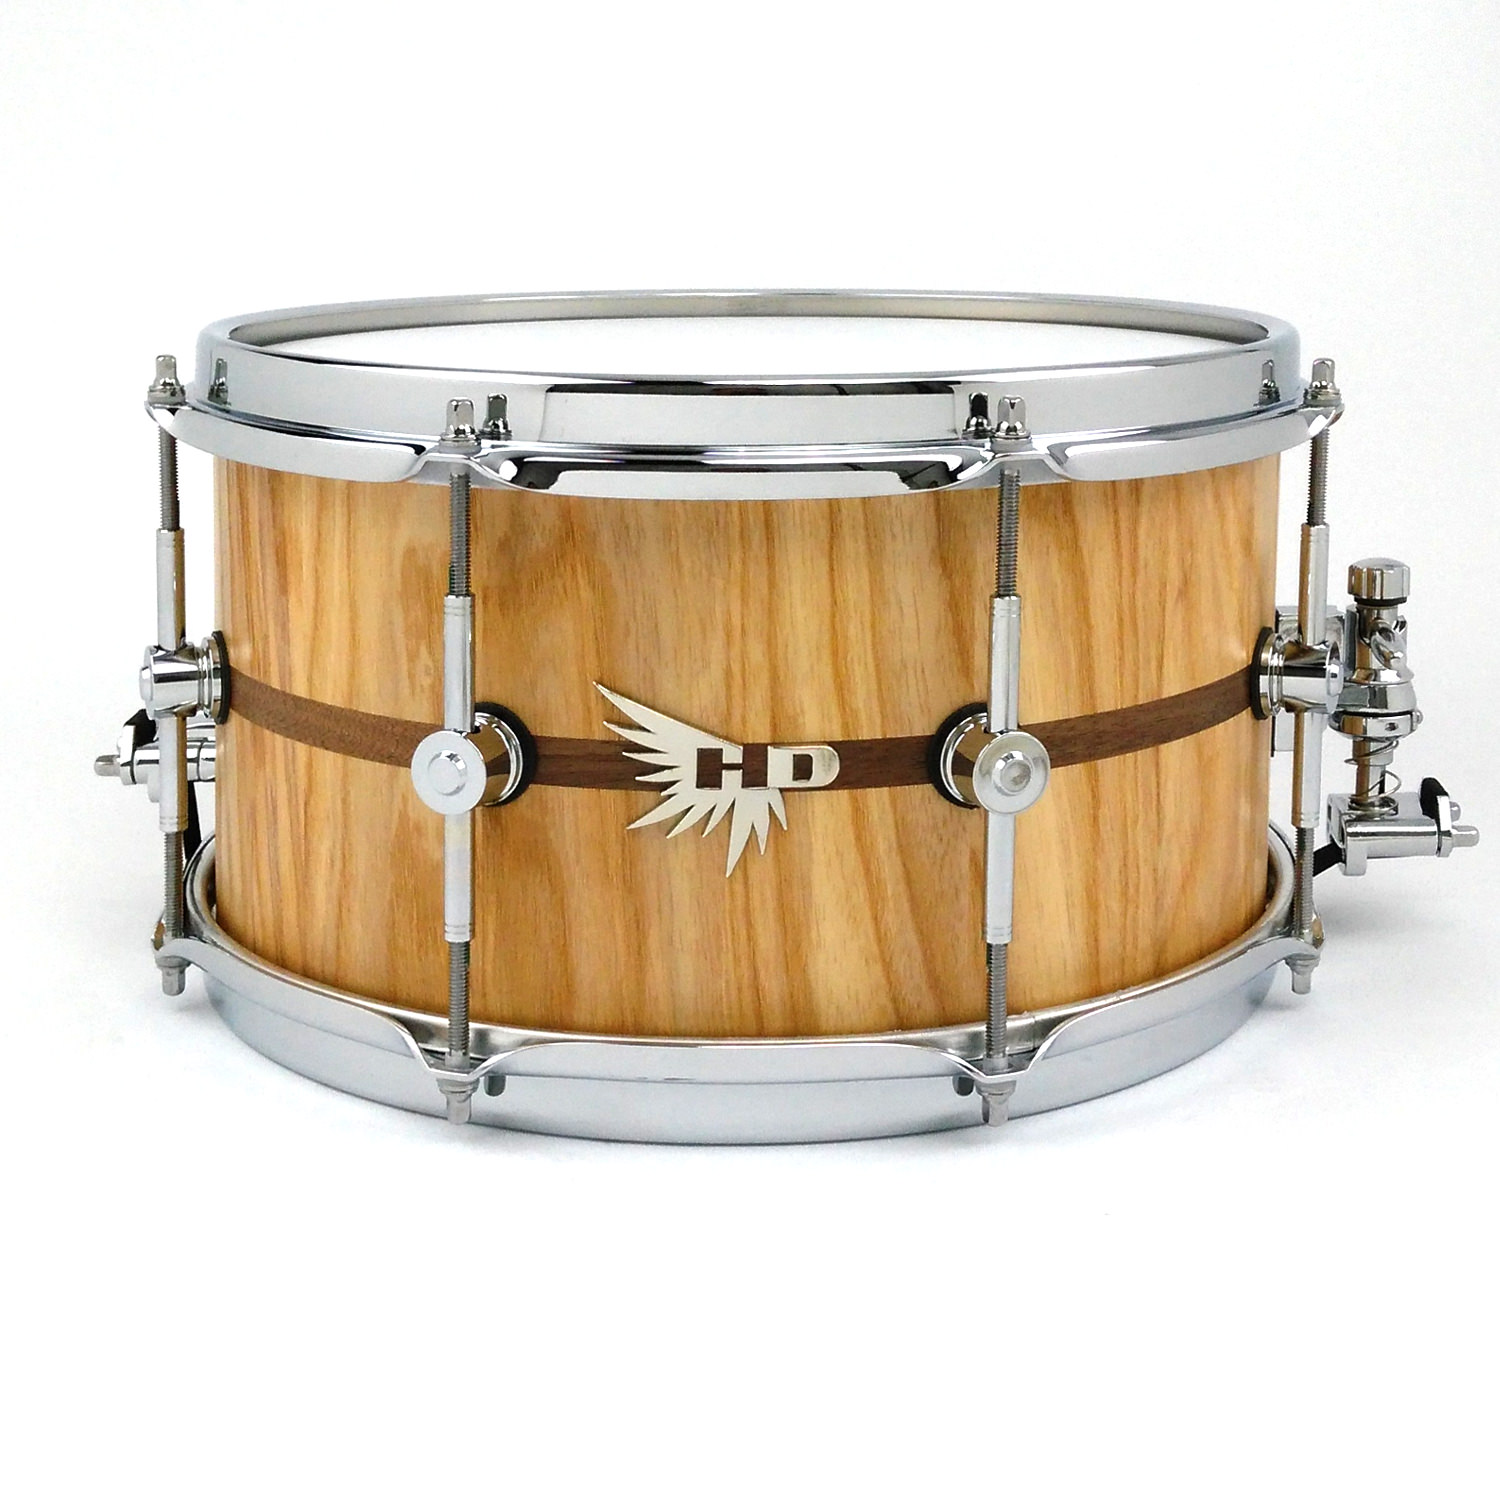 "13"" Stave Snare Drum Ash Hendrix Drums Walnut Inlay"